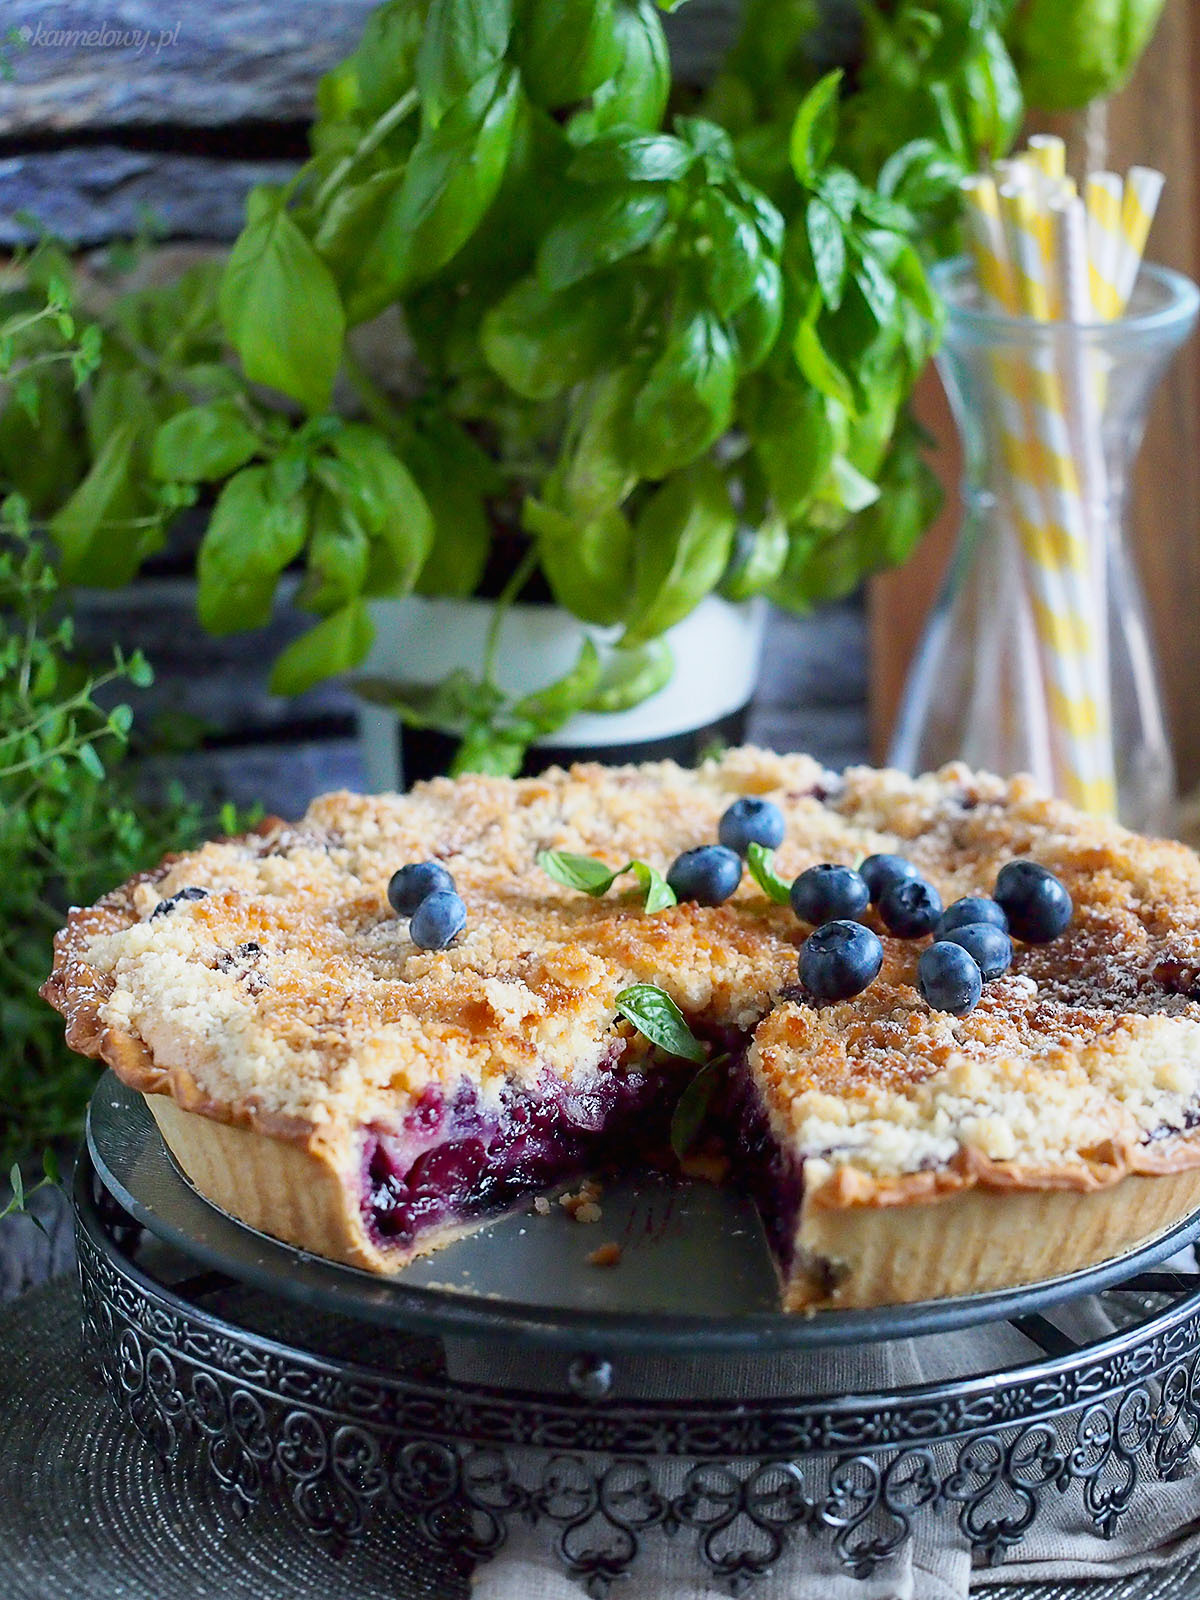 Kremowa tarta z wiśniami i jagodami z kruszonką / Cherry and blueberry cream tart with streusel